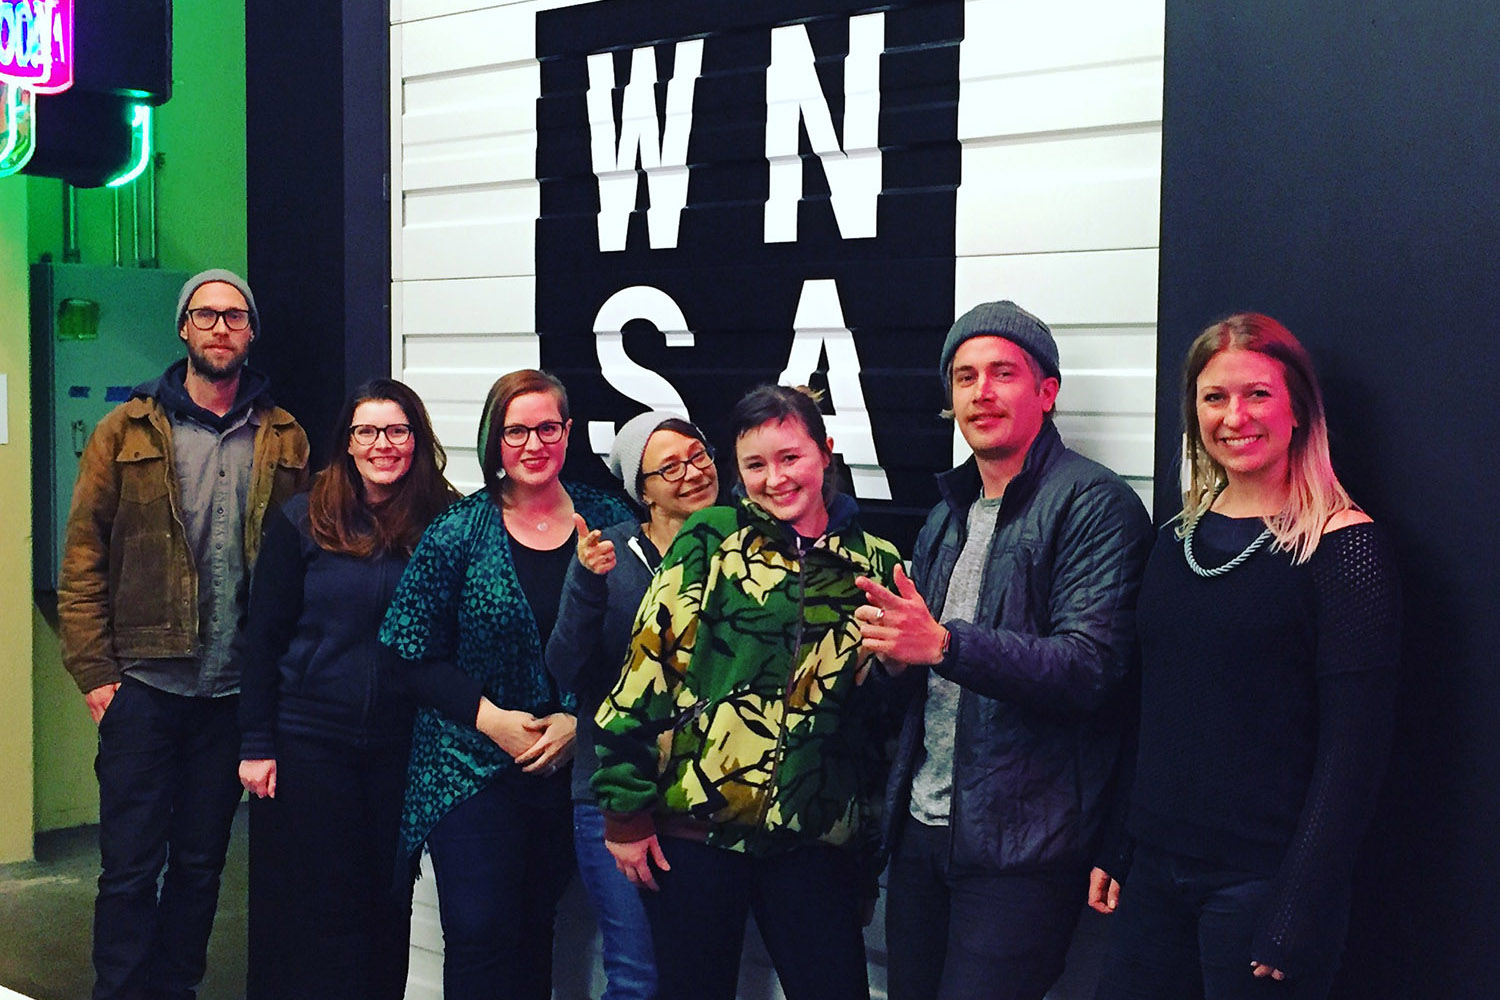 Our first students! Winter 2018. Image  ©  2018 Western Neon School of Art.